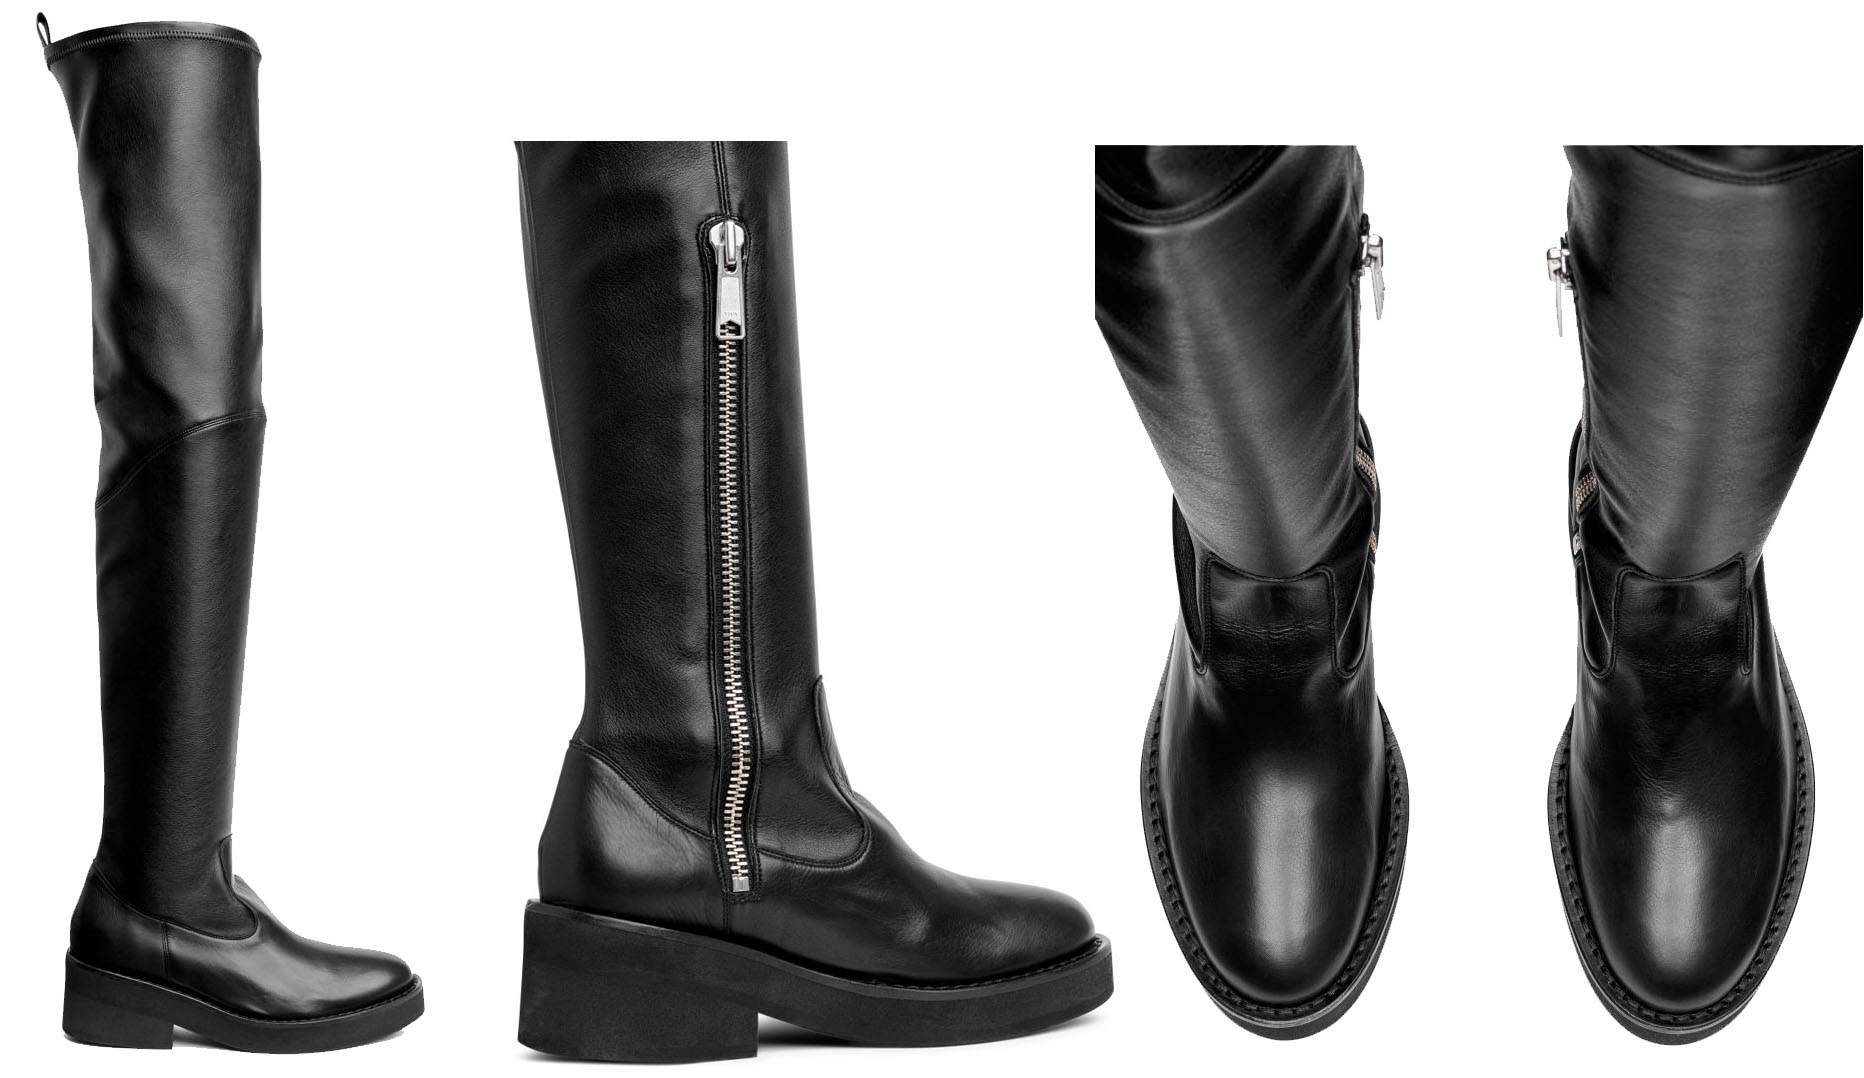 A more affordable pair of OTK boots featuring elastication at the top and chunky visible zip on one side